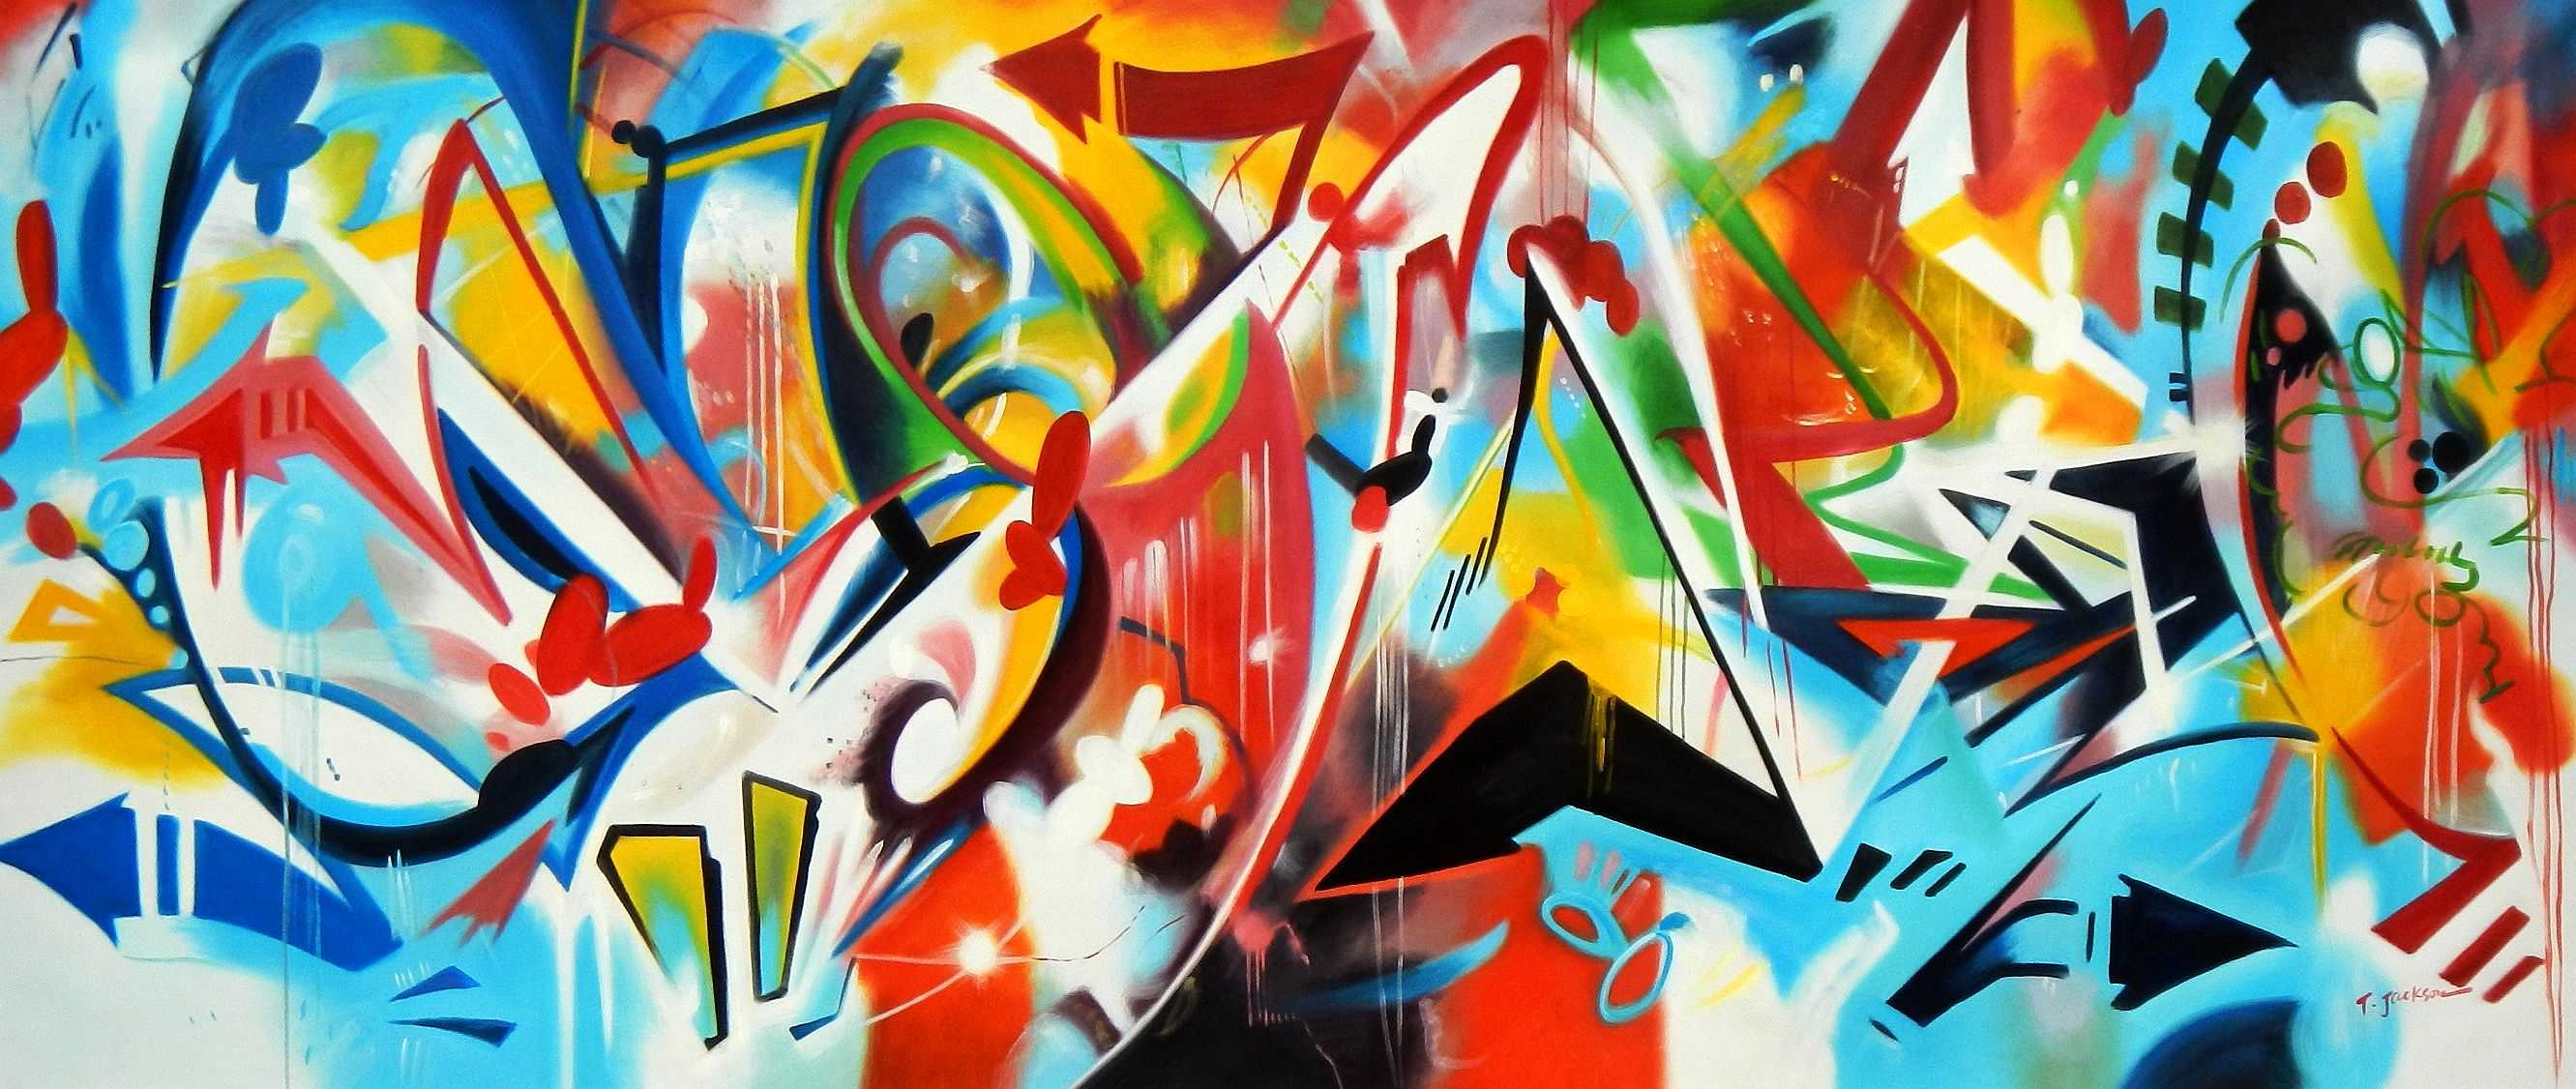 Abstract - Franz Marc street art mix t95965 75x180cm abstraktes Ölbild